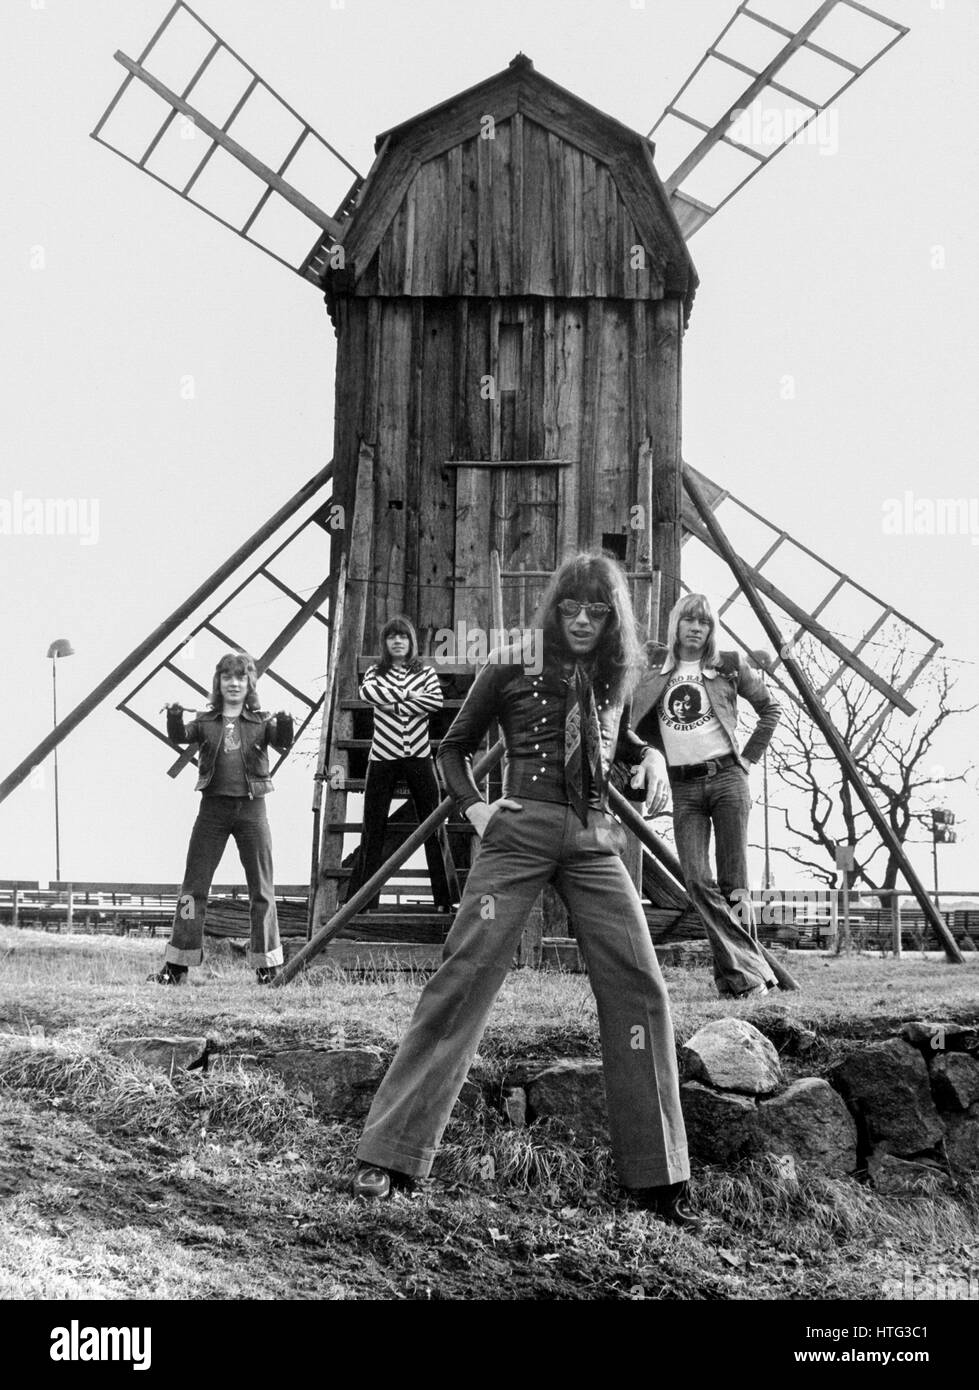 The Sweet British pop group 1975 member of the group Brian Conolly-Andy Scott-Steve Priest och Mick Tucker - Stock Image